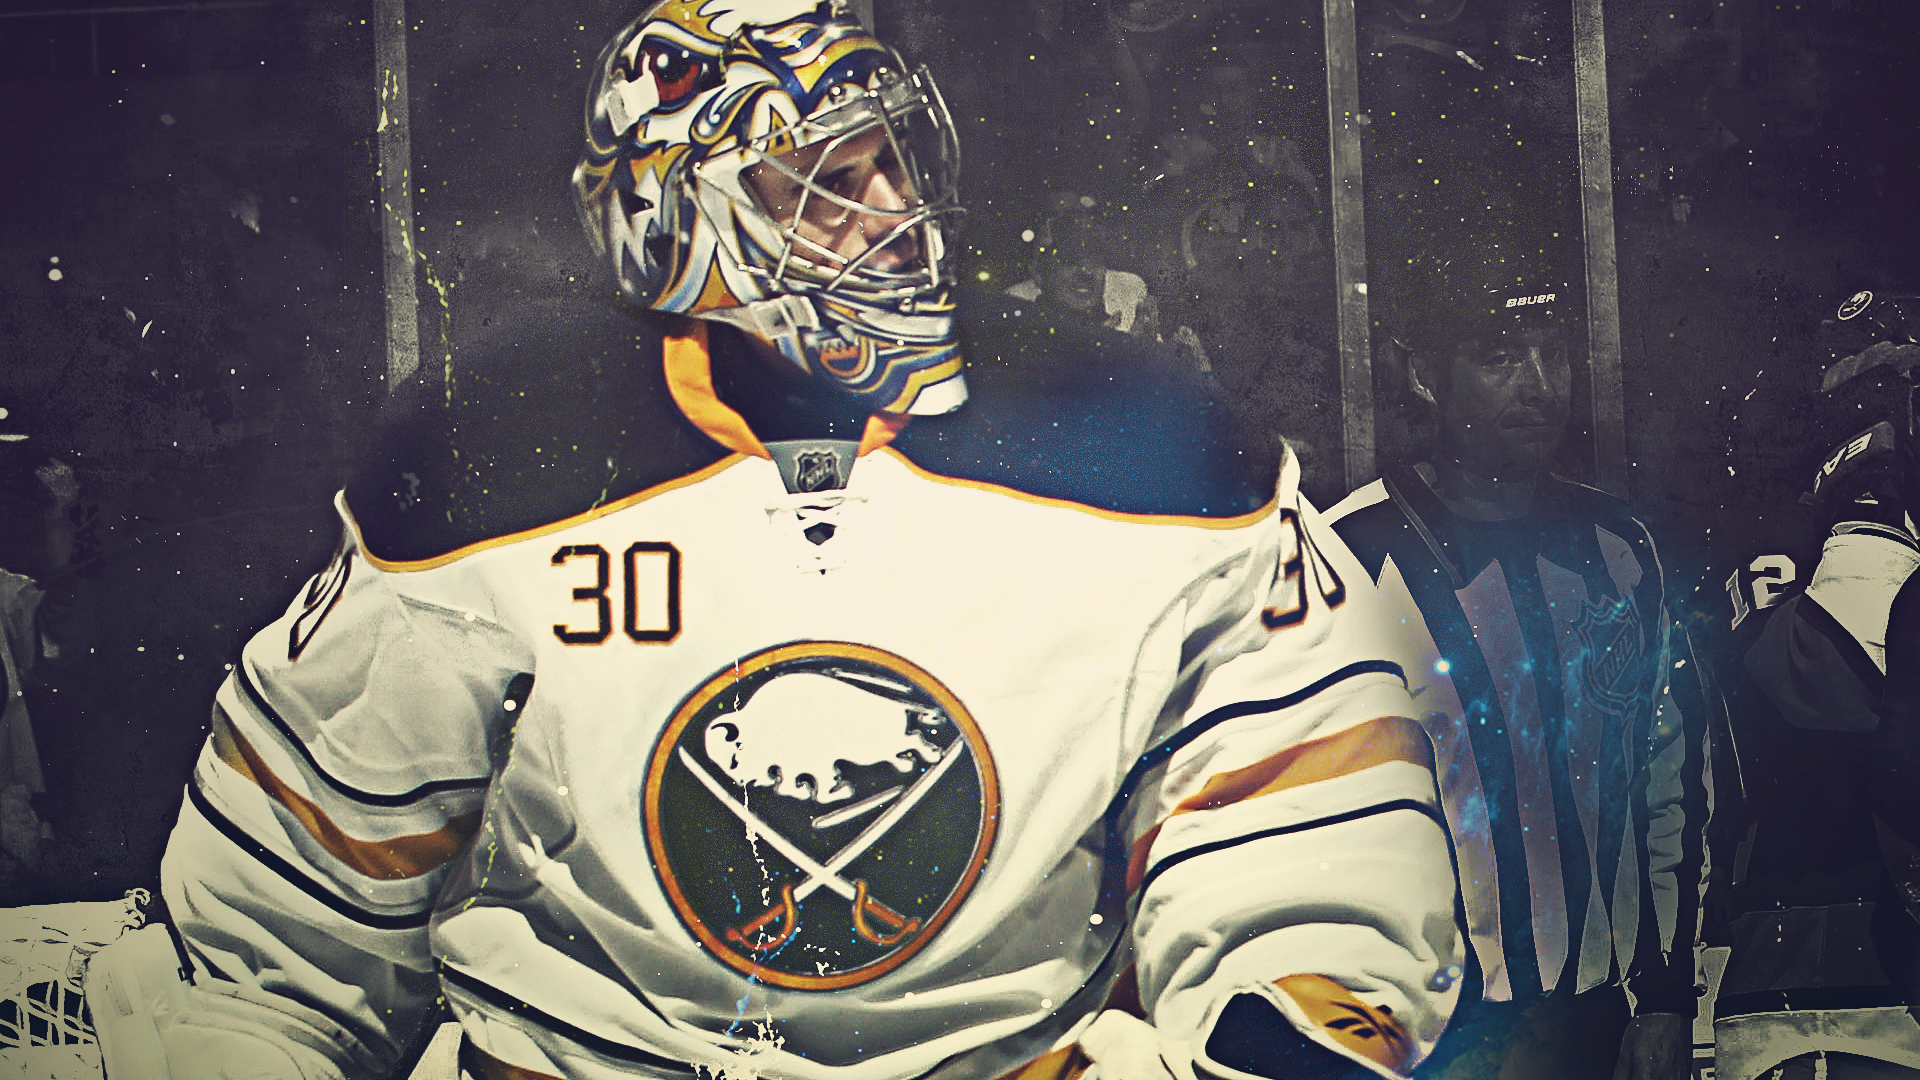 1920x1080 - Buffalo Sabres Wallpapers 11